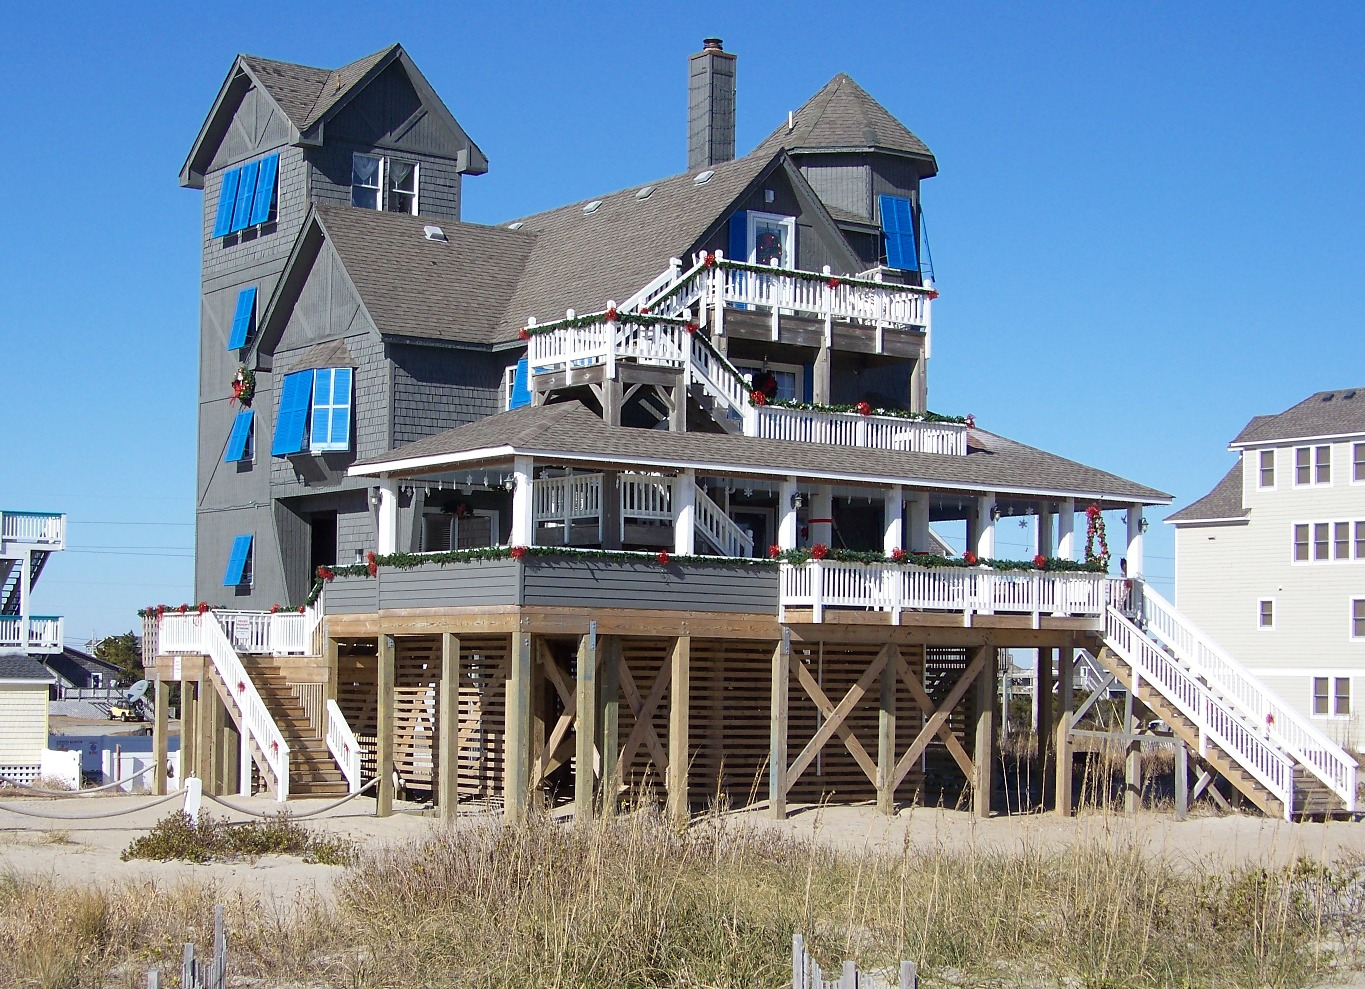 Nights In Rodanthe House On Beach Part - 17: If You Would Like Any Information Regarding The Outer Banks, Do Not  Hestiate To Contact Us At Blue Horizon Realty 877-667-6865 Or Email ...